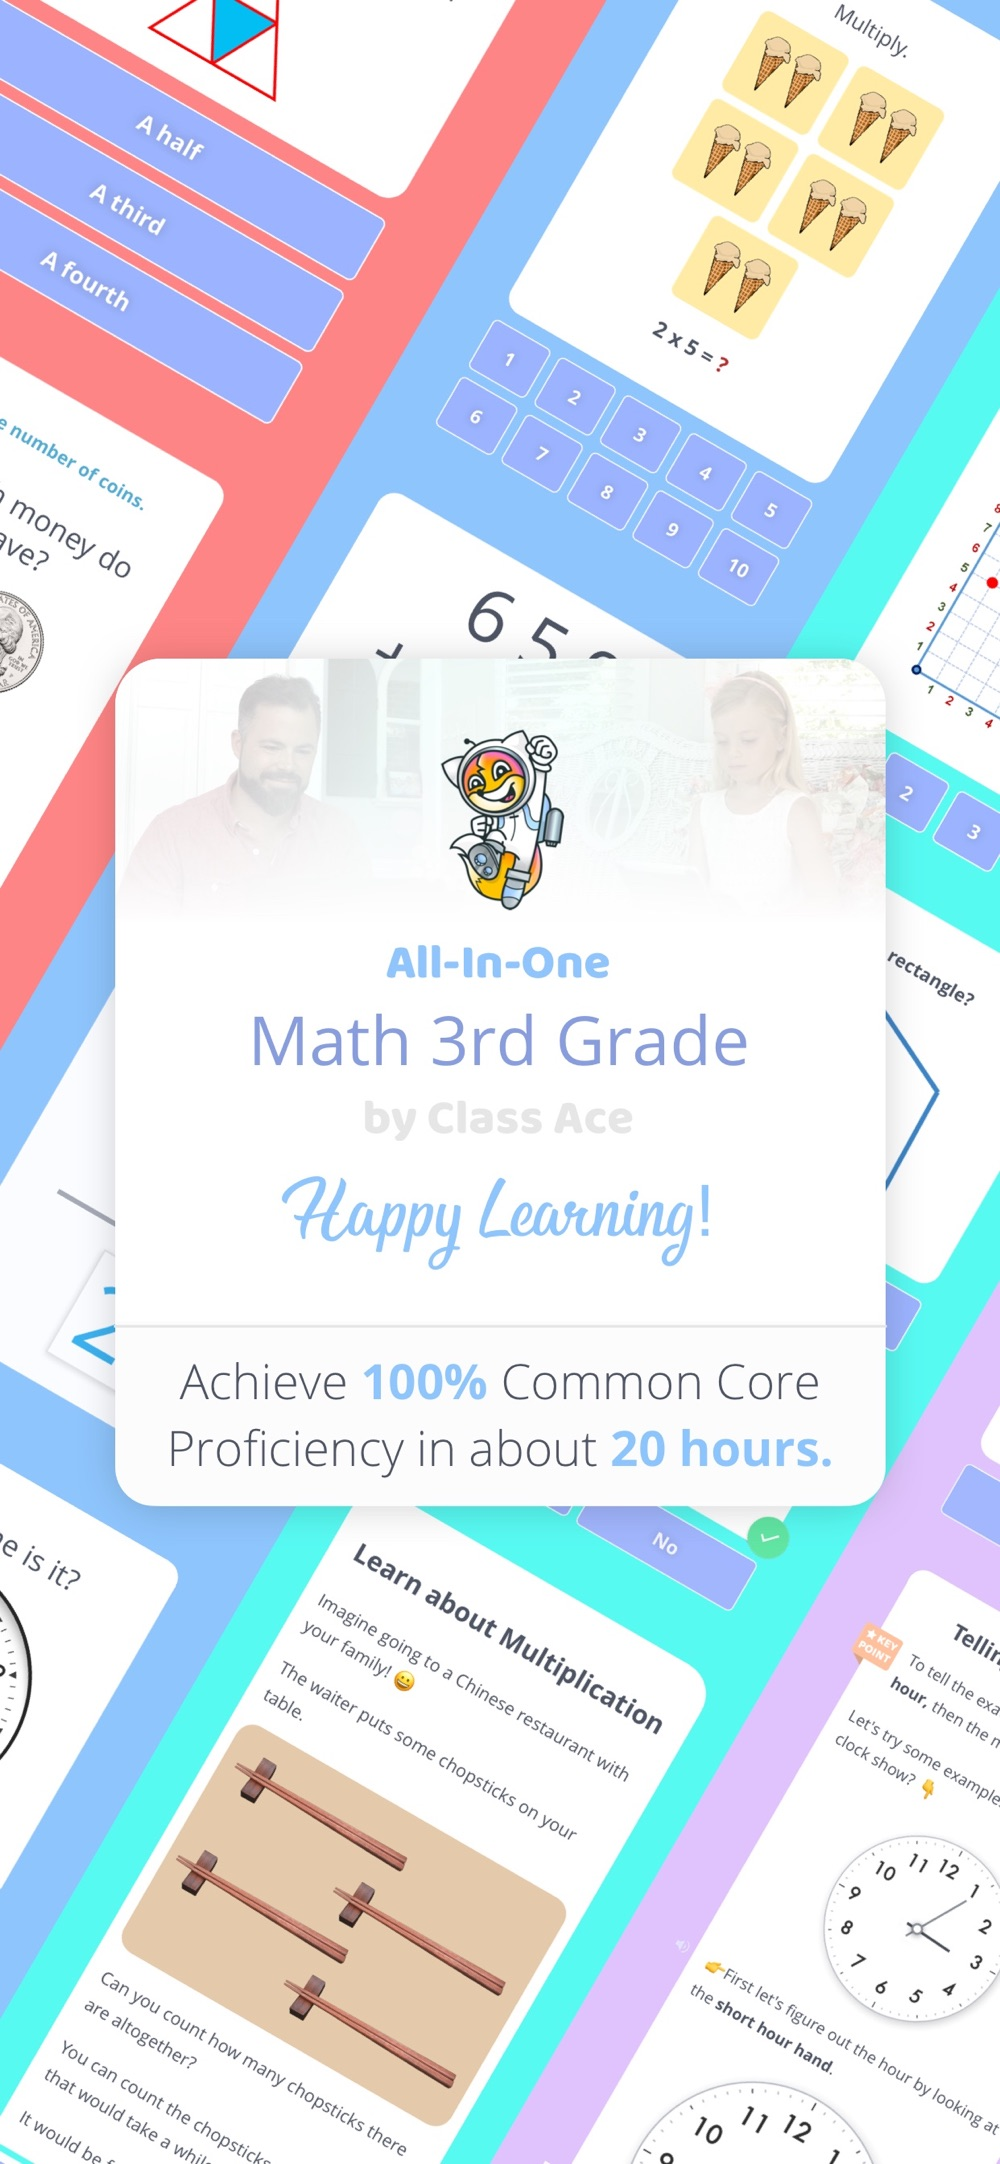 All-In-One Math 3rd Grade